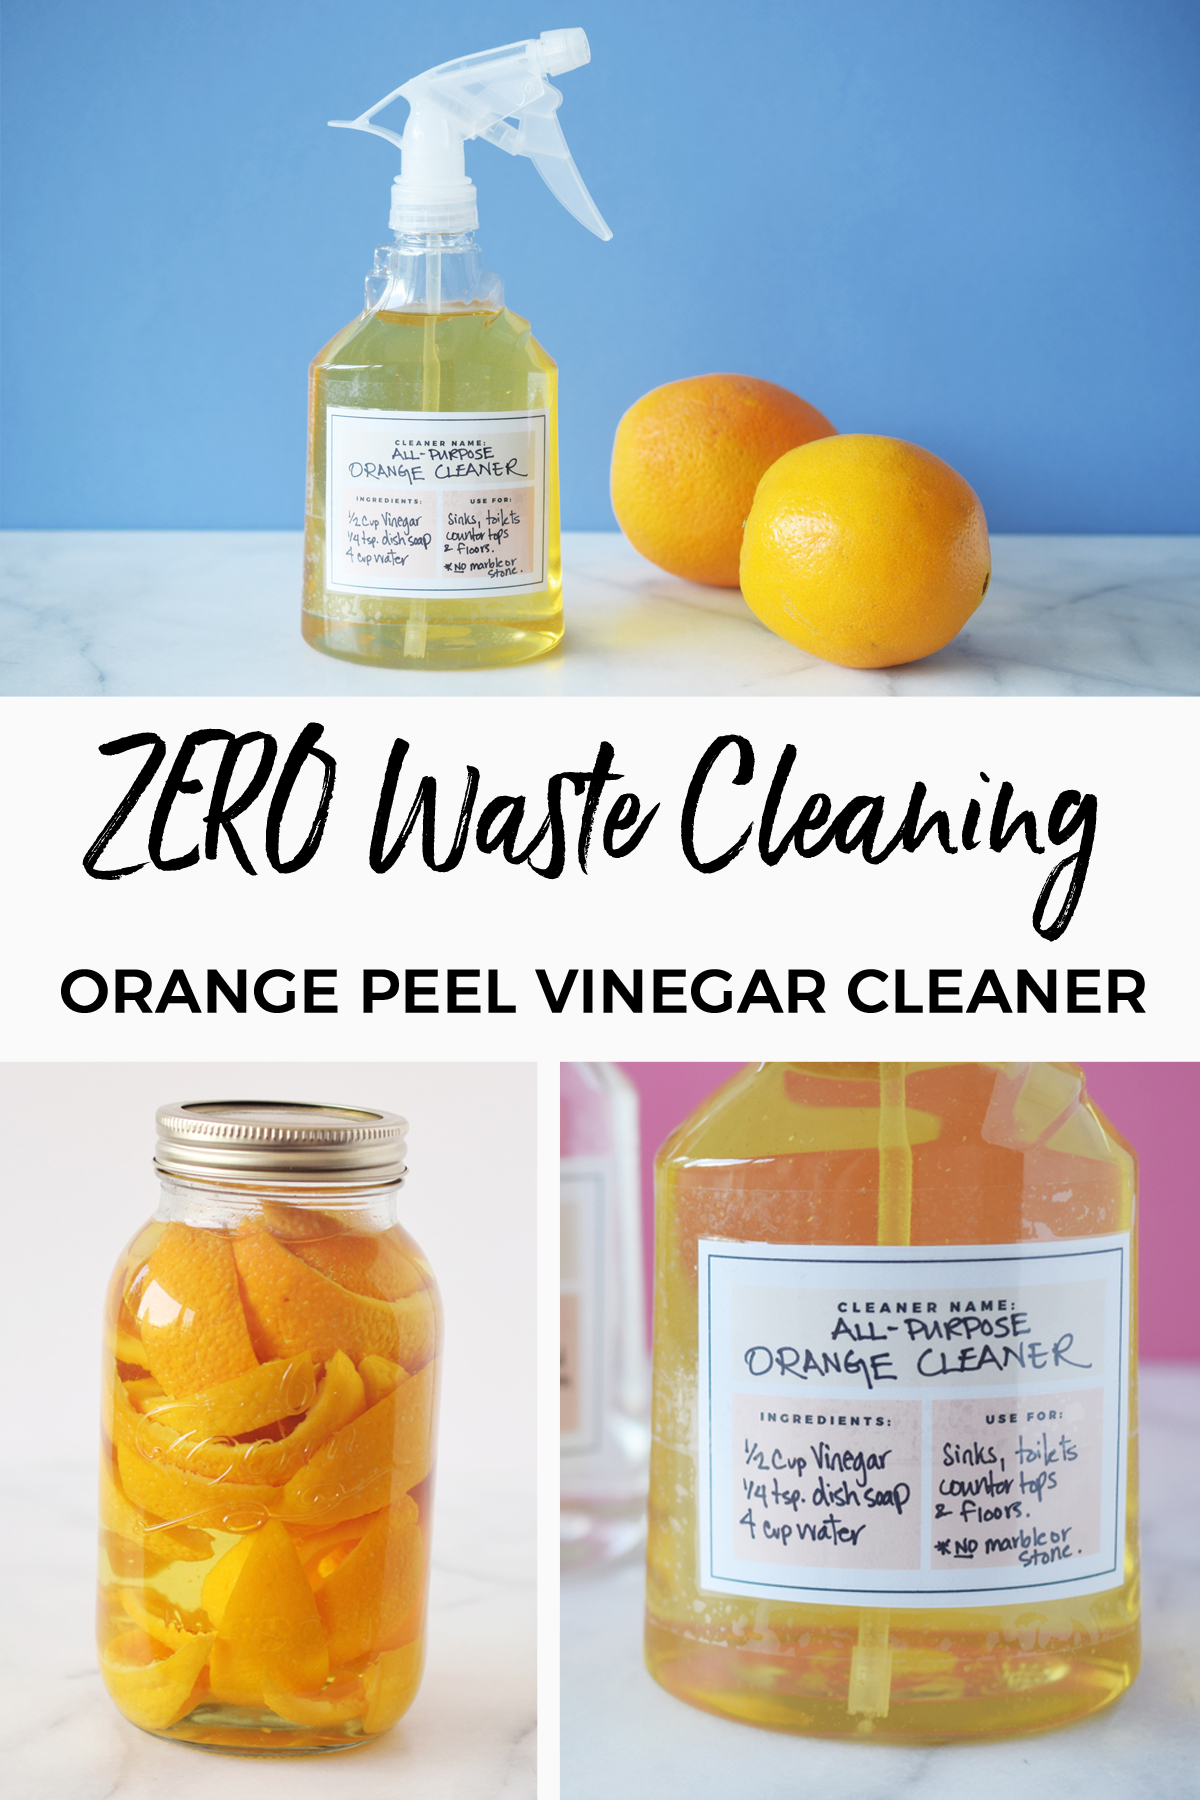 Zero waste cleaning: orange peel vinegar cleaner. Perfect for zero waste cleaning. It makes a great DIY all-purpose cleaner. Here's how to make it and use it. #zerowaste #homemade #orange #citrus #cleaning